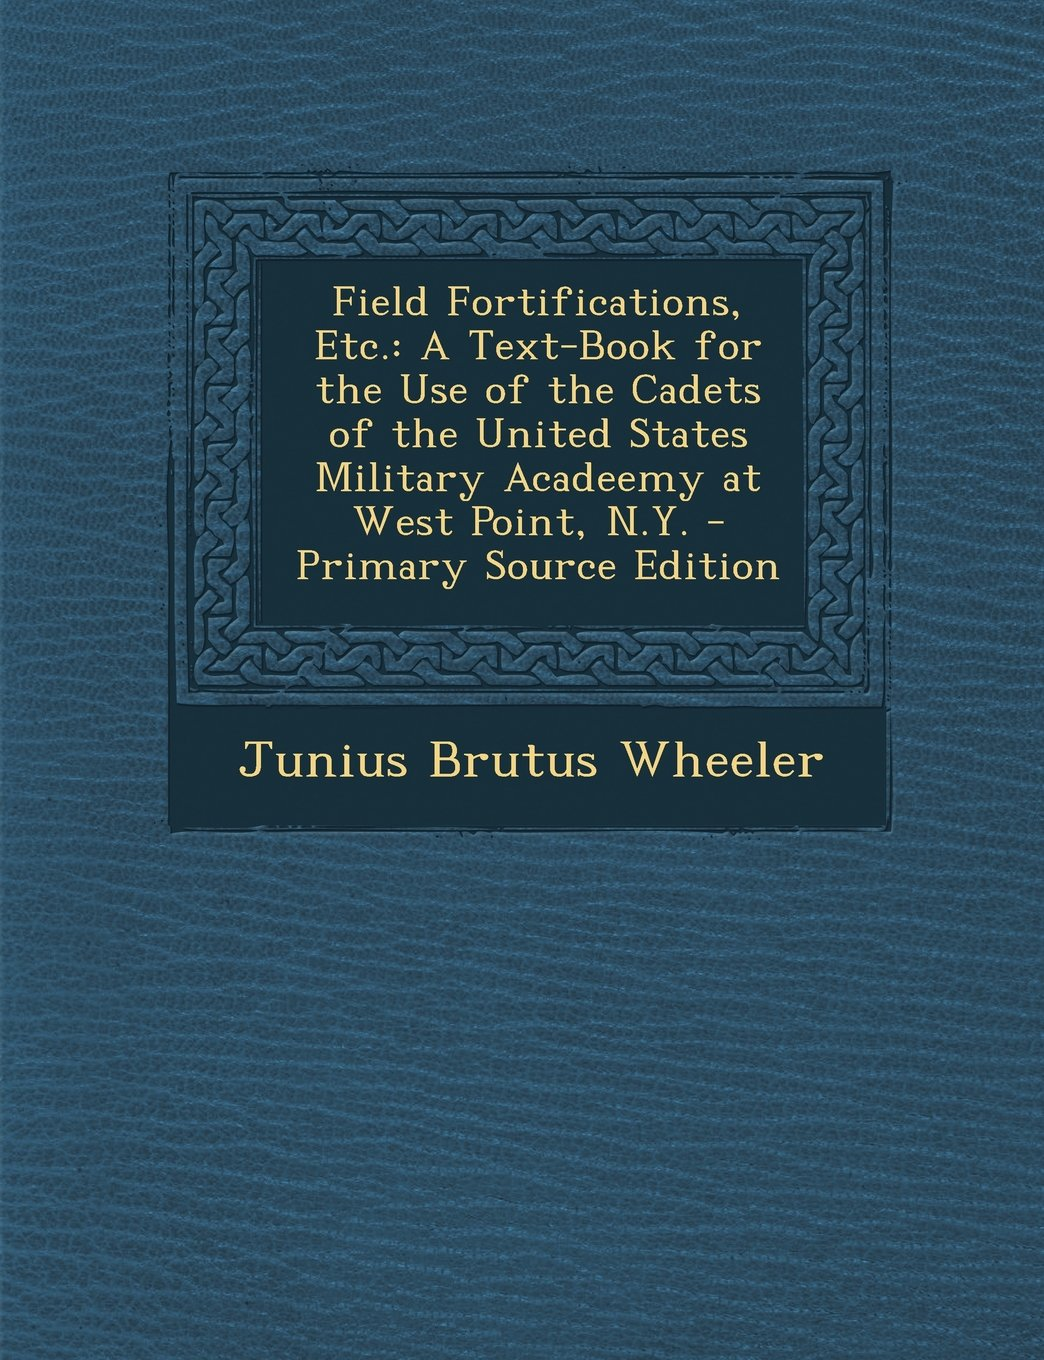 Field Fortifications, Etc.: A Text-Book for the Use of the Cadets of the United States Military Acadeemy at West Point, N.Y. - Primary Source Edition pdf epub